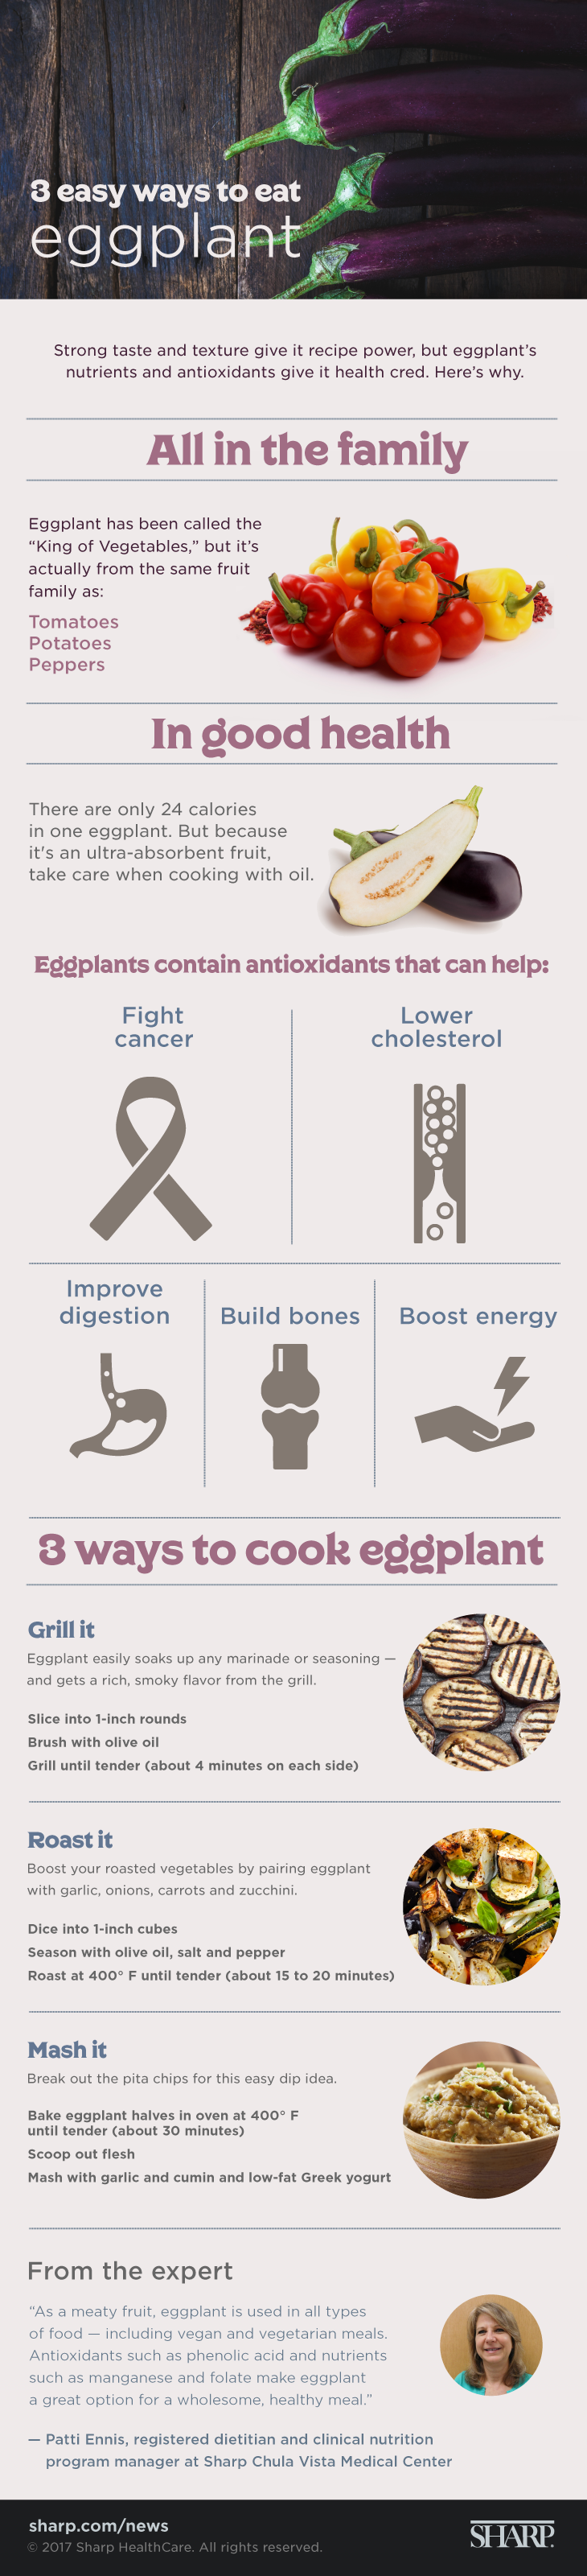 "3 easy ways to eat eggplant (infographic). Strong taste and texture give it recipe power, but eggplant's nutrients and antioxidants give it health ""cred."" In fact, eggplant has been called the ""King of Vegetables,"" but it's actually from the same fruit family as tomatoes, potatoes and peppers. Eggplants contain antioxidants that can help fight cancer, lower cholesterol, improve digestion, build bones and boost energy. ""As a meaty fruit, eggplant is used in all types of food – including vegan and vegetarian meals,"" Says Patti Ennis, registered dietician and clinical nutrition program manager at Sharp Chula Vista Medical Center. ""Antioxidants such as phenolic acid and nutrients such as manganese and folate make eggplant a great option for a wholesome, healthy meal."" There are only 24 calories in one eggplant. However, because it's an ultra-absorbent fruit, take care when cooking with oil. Three ways to cook eggplant. Grill it. Eggplant easily soaks up any marinade or seasoning and gets a rich, smoky flavor from the grill. Ingredients. 1 eggplant. Olive oil. Directions. Slice eggplant into 1-inch rounds. Brush the eggplant with olive oil. Grill it until it is tender (about 4 minutes on each side). Roast it. Boost your roasted vegetables by pairing eggplant with garlic, onion, carrots and zucchini. Ingredients. 1 eggplant. Olive oil. Salt. Pepper. Directions. Heat oven to 400F. Dice the eggplant into 1-inch cubes. Season the eggplant with olive oil, salt and pepper. Roast the eggplant until tender (about 15 to 20 minutes). Mash it. Break out the pita chips for this easy dip idea. Ingredients. 1 eggplant. Garlic. Cumin. Low-fat Greek yogurt. Directions. Heat oven to 400F. Slice eggplant in half lengthwise and bake until tender (about 30 minutes). Scoop out the eggplant's flesh. Mash eggplant with garlic, cumin and low-fat Greek yogurt."